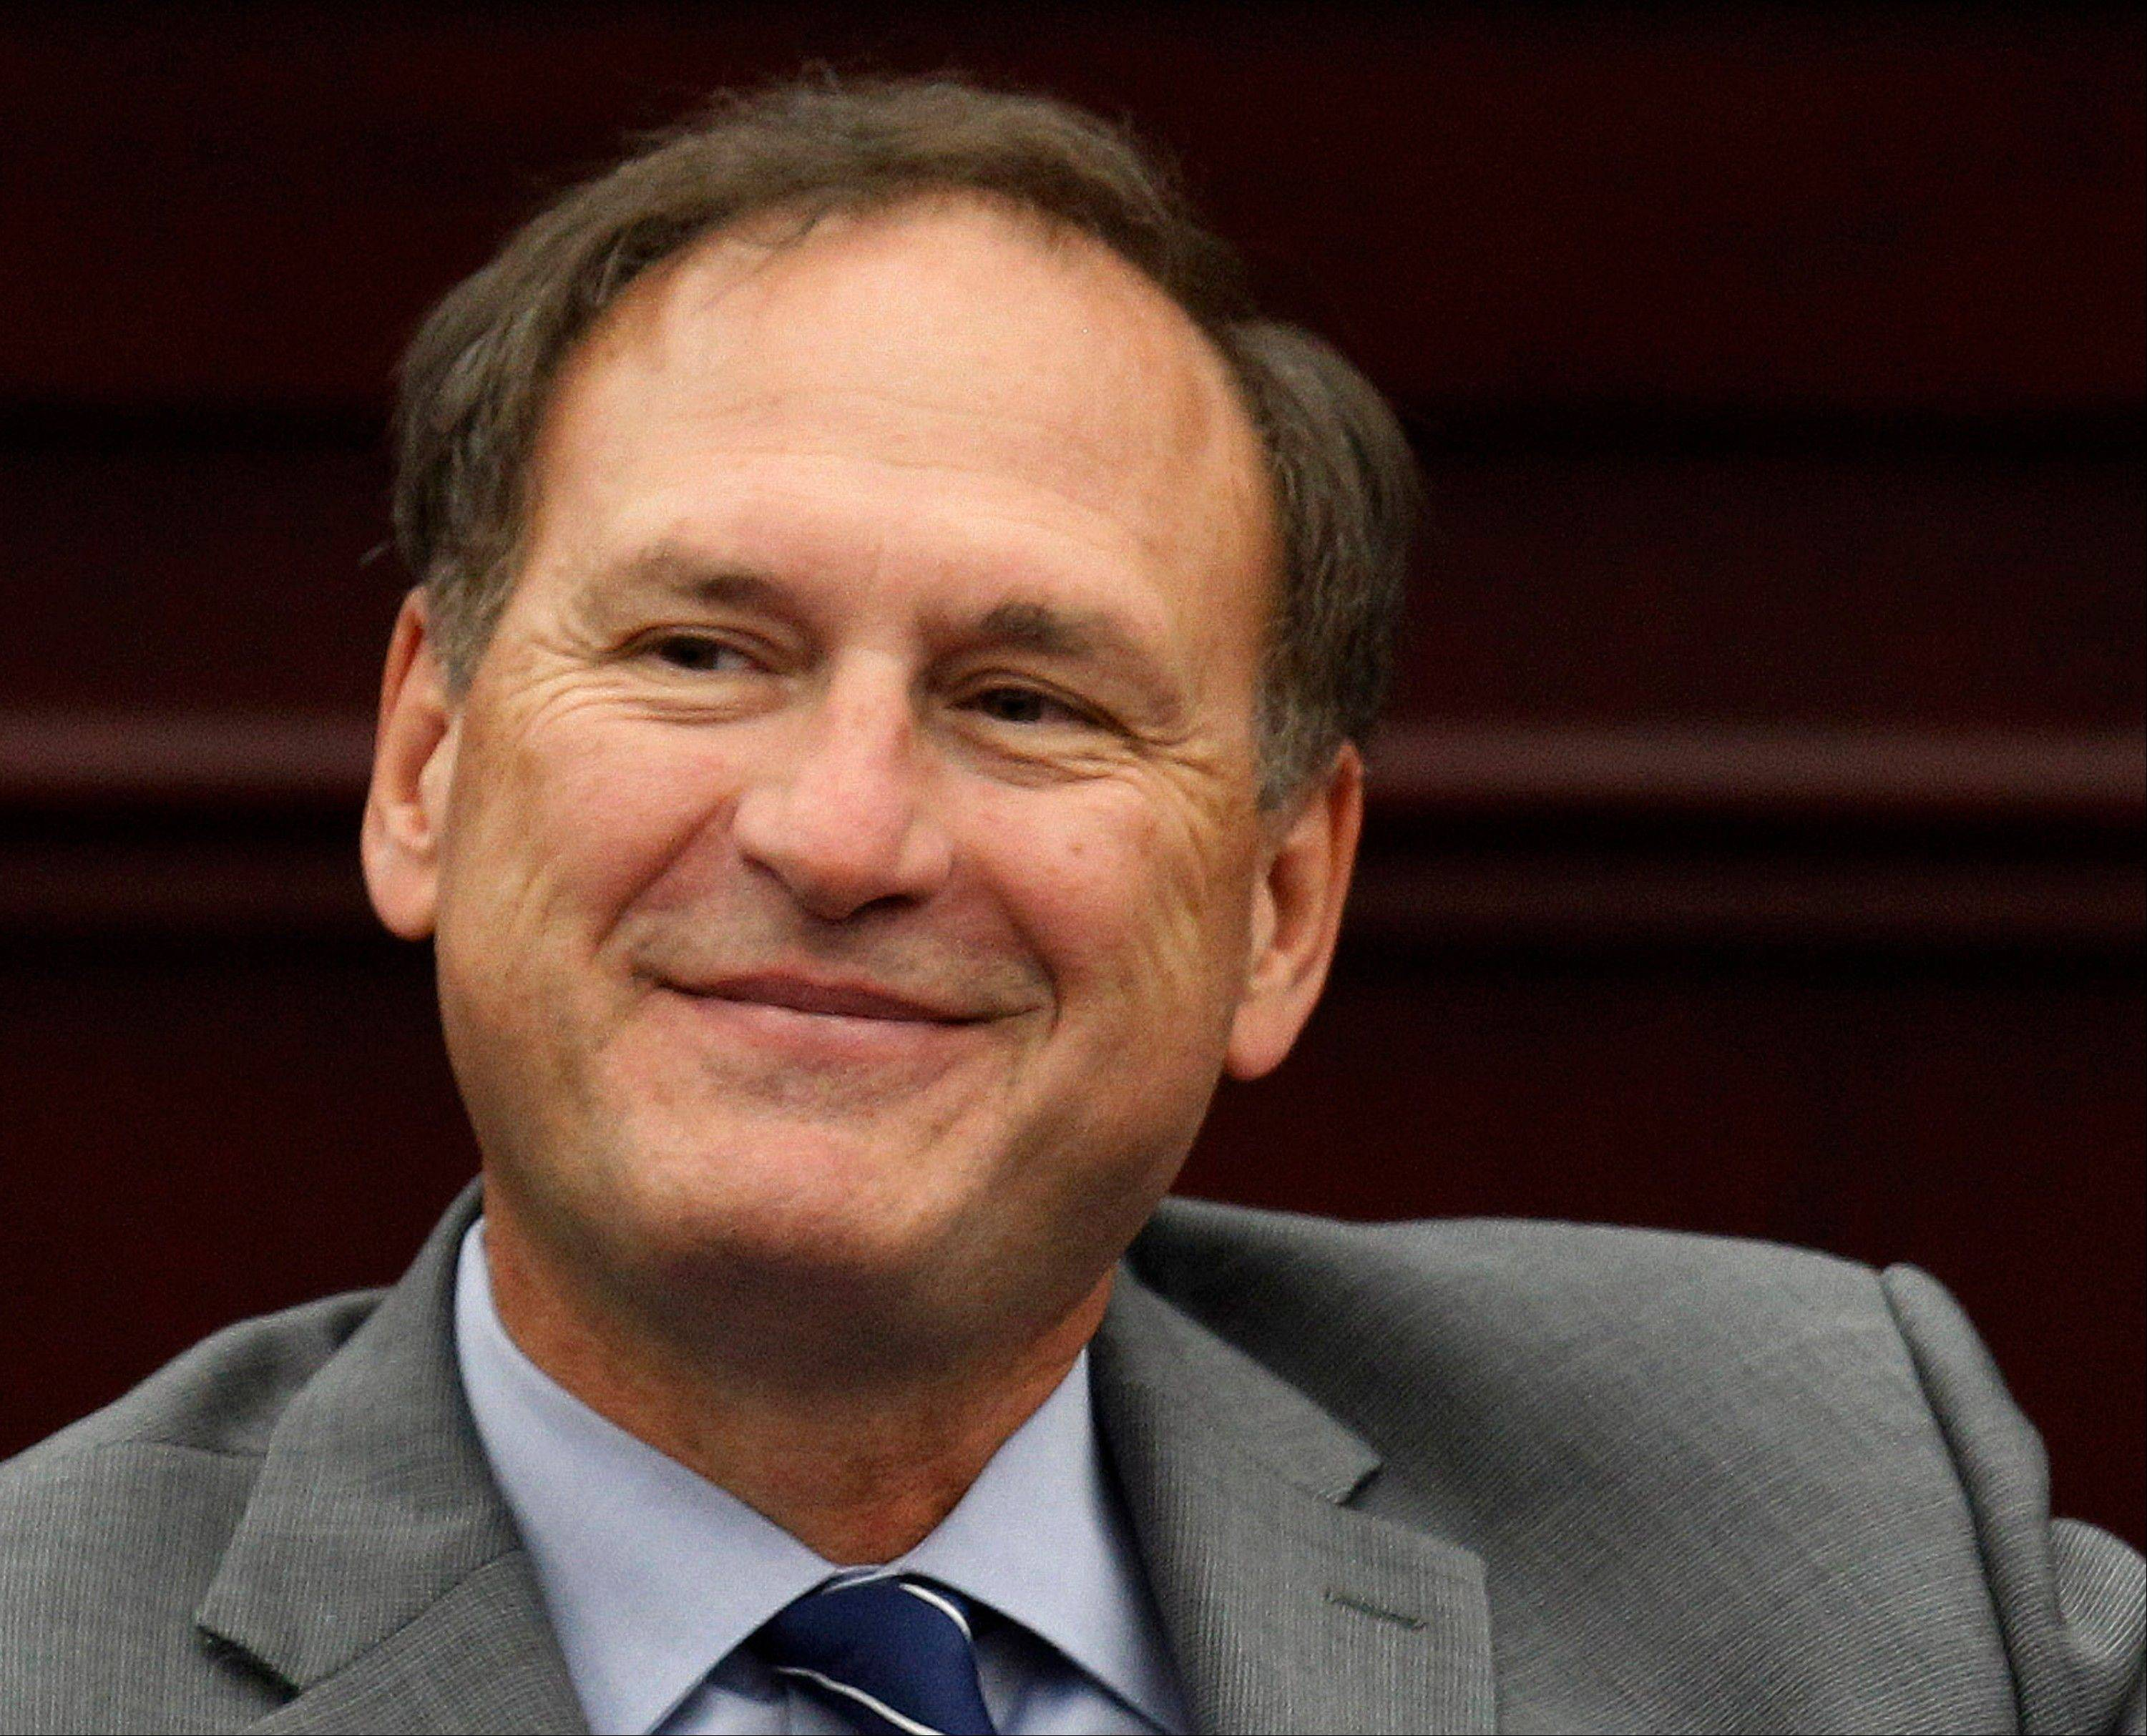 Based on his questions Tuesday, Supreme Court Associate Justice Samuel A. Alito, Jr. sounded as if he supported a law that would let police take DNA from those arrested, but not convicted, in hopes of using it to solve old cases.